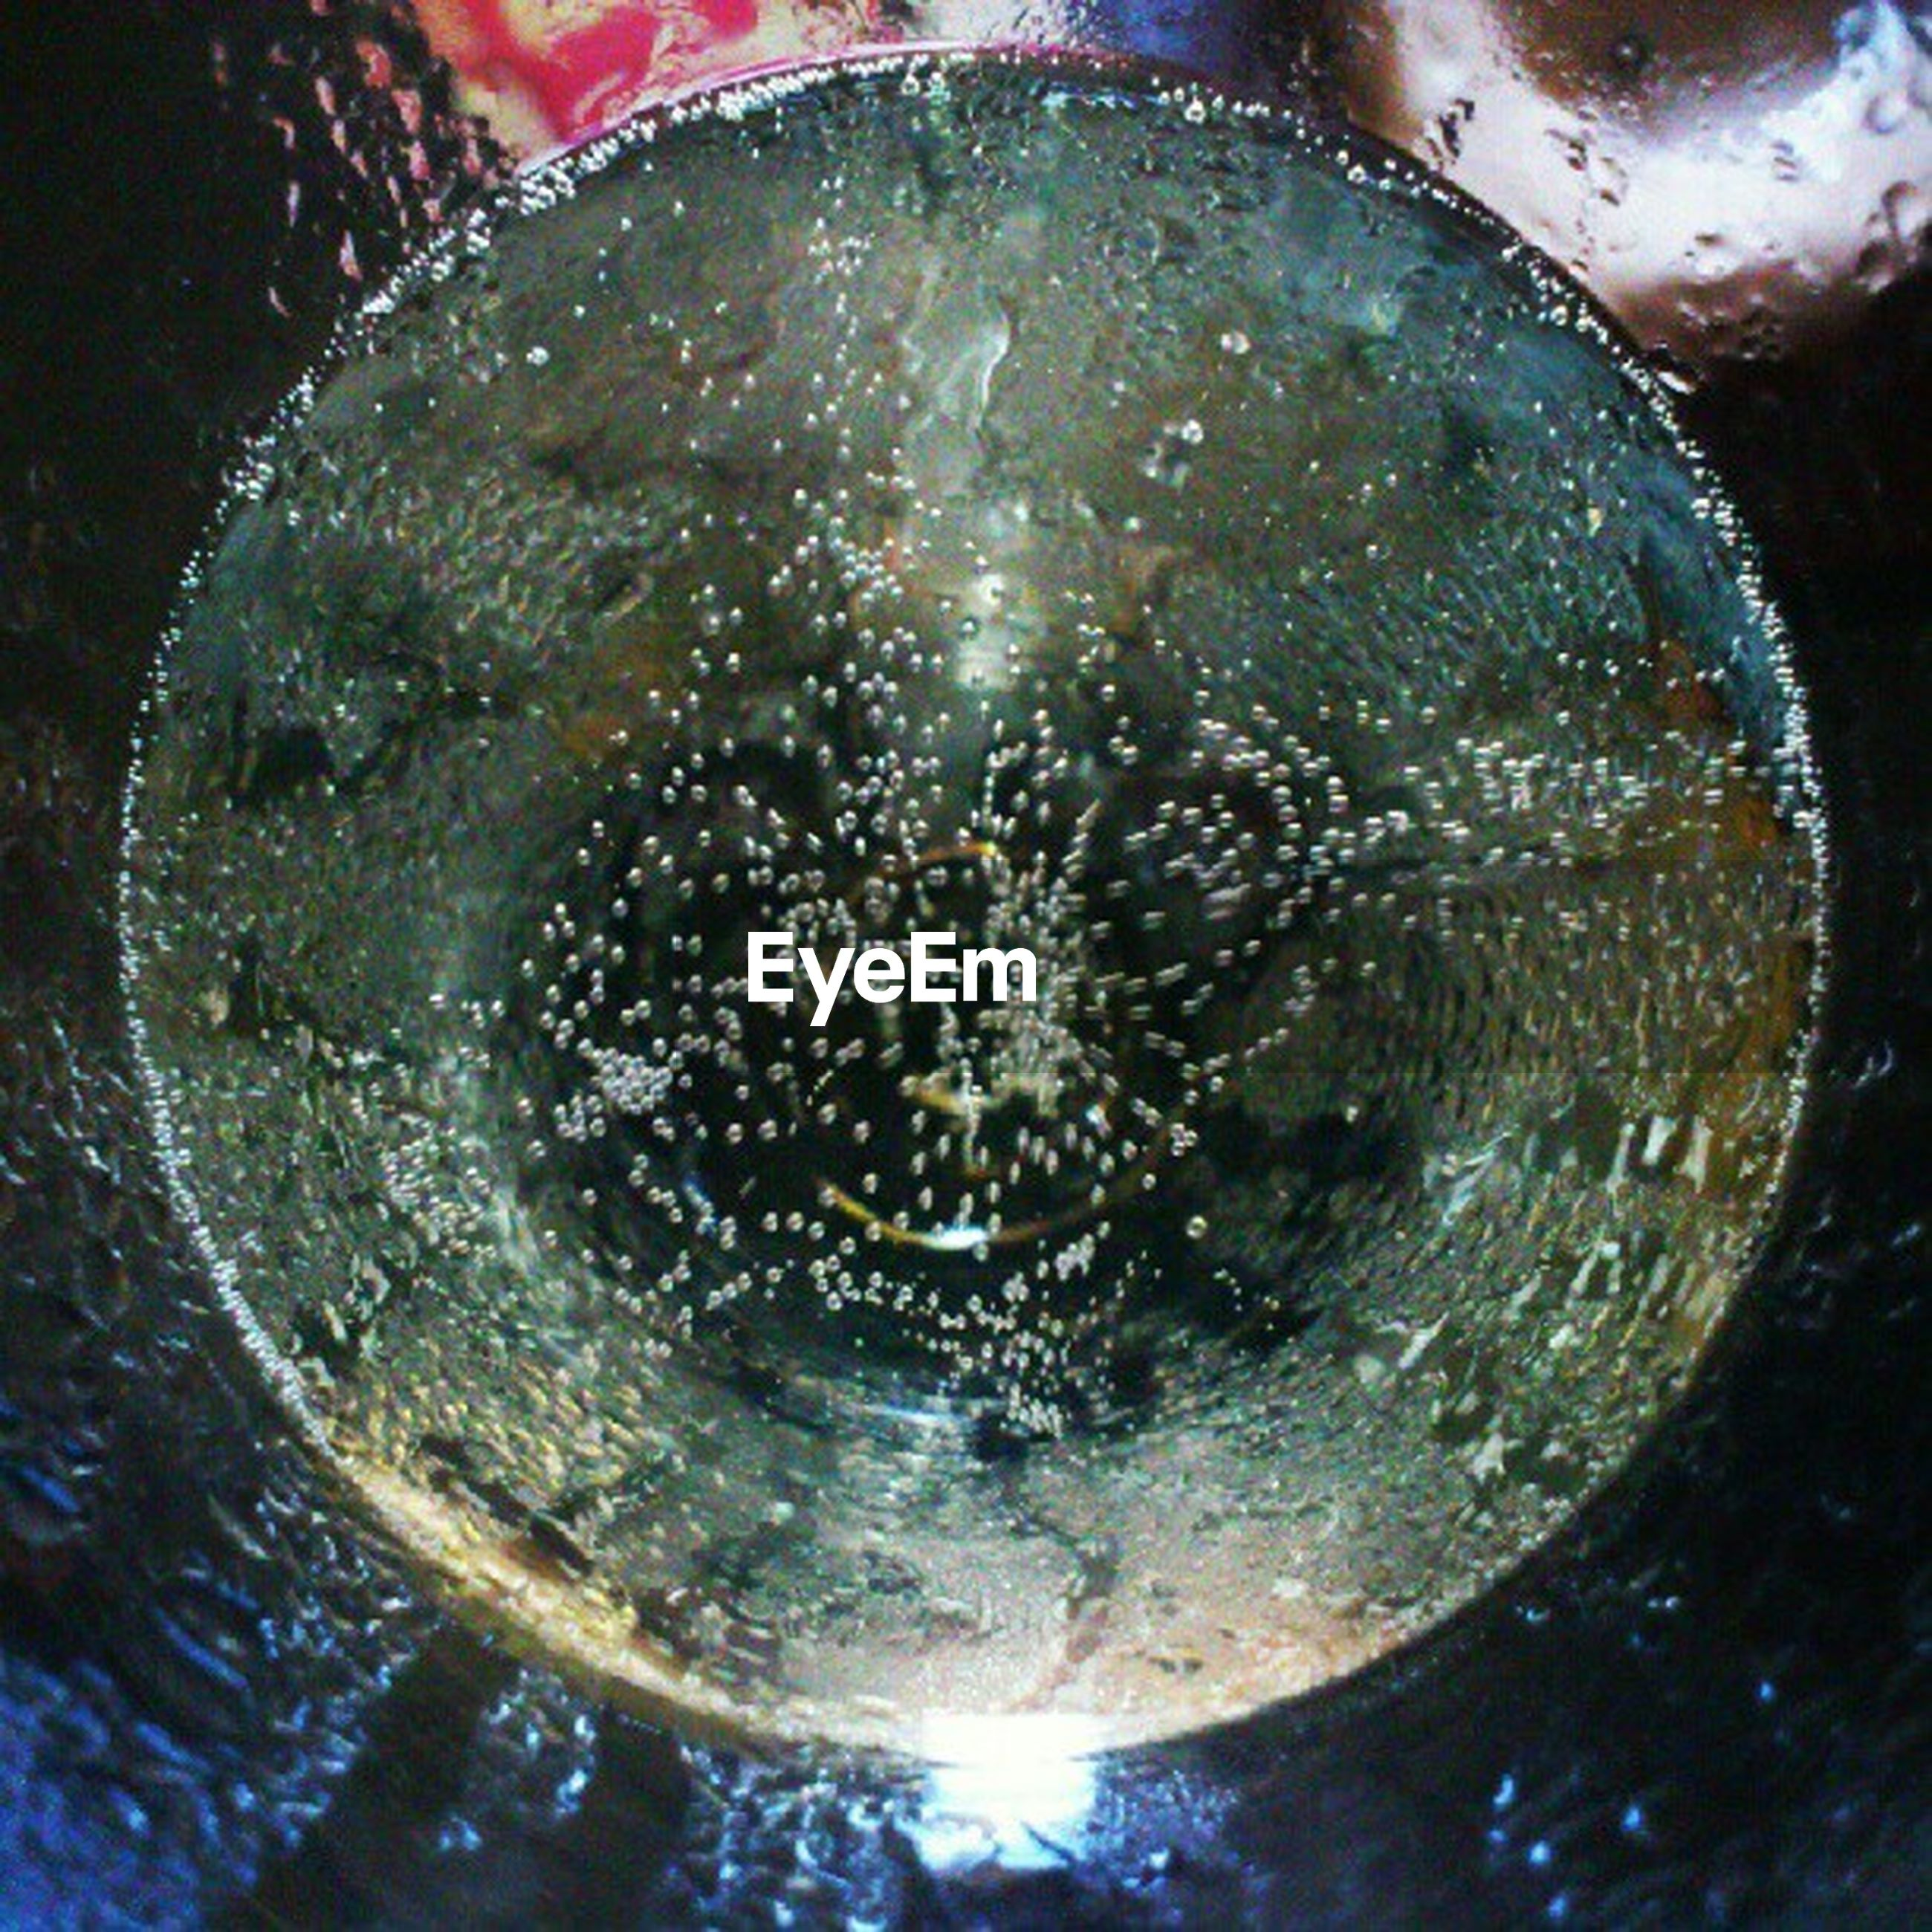 water, drop, circle, close-up, indoors, wet, glass - material, full frame, transparent, bubble, backgrounds, reflection, refreshment, purity, geometric shape, rippled, splashing, high angle view, pattern, drink